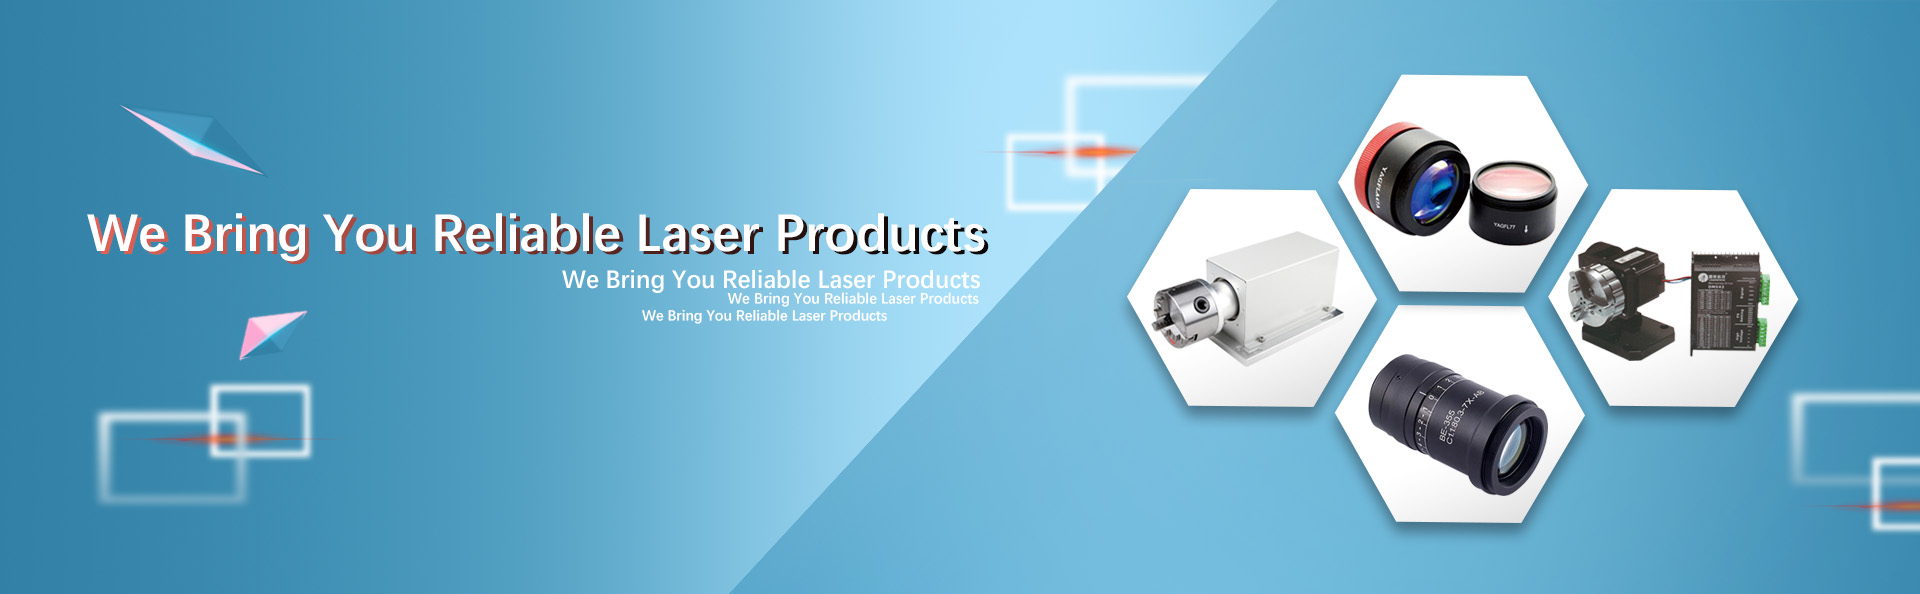 Parts for laser machines with premium quality and performance.